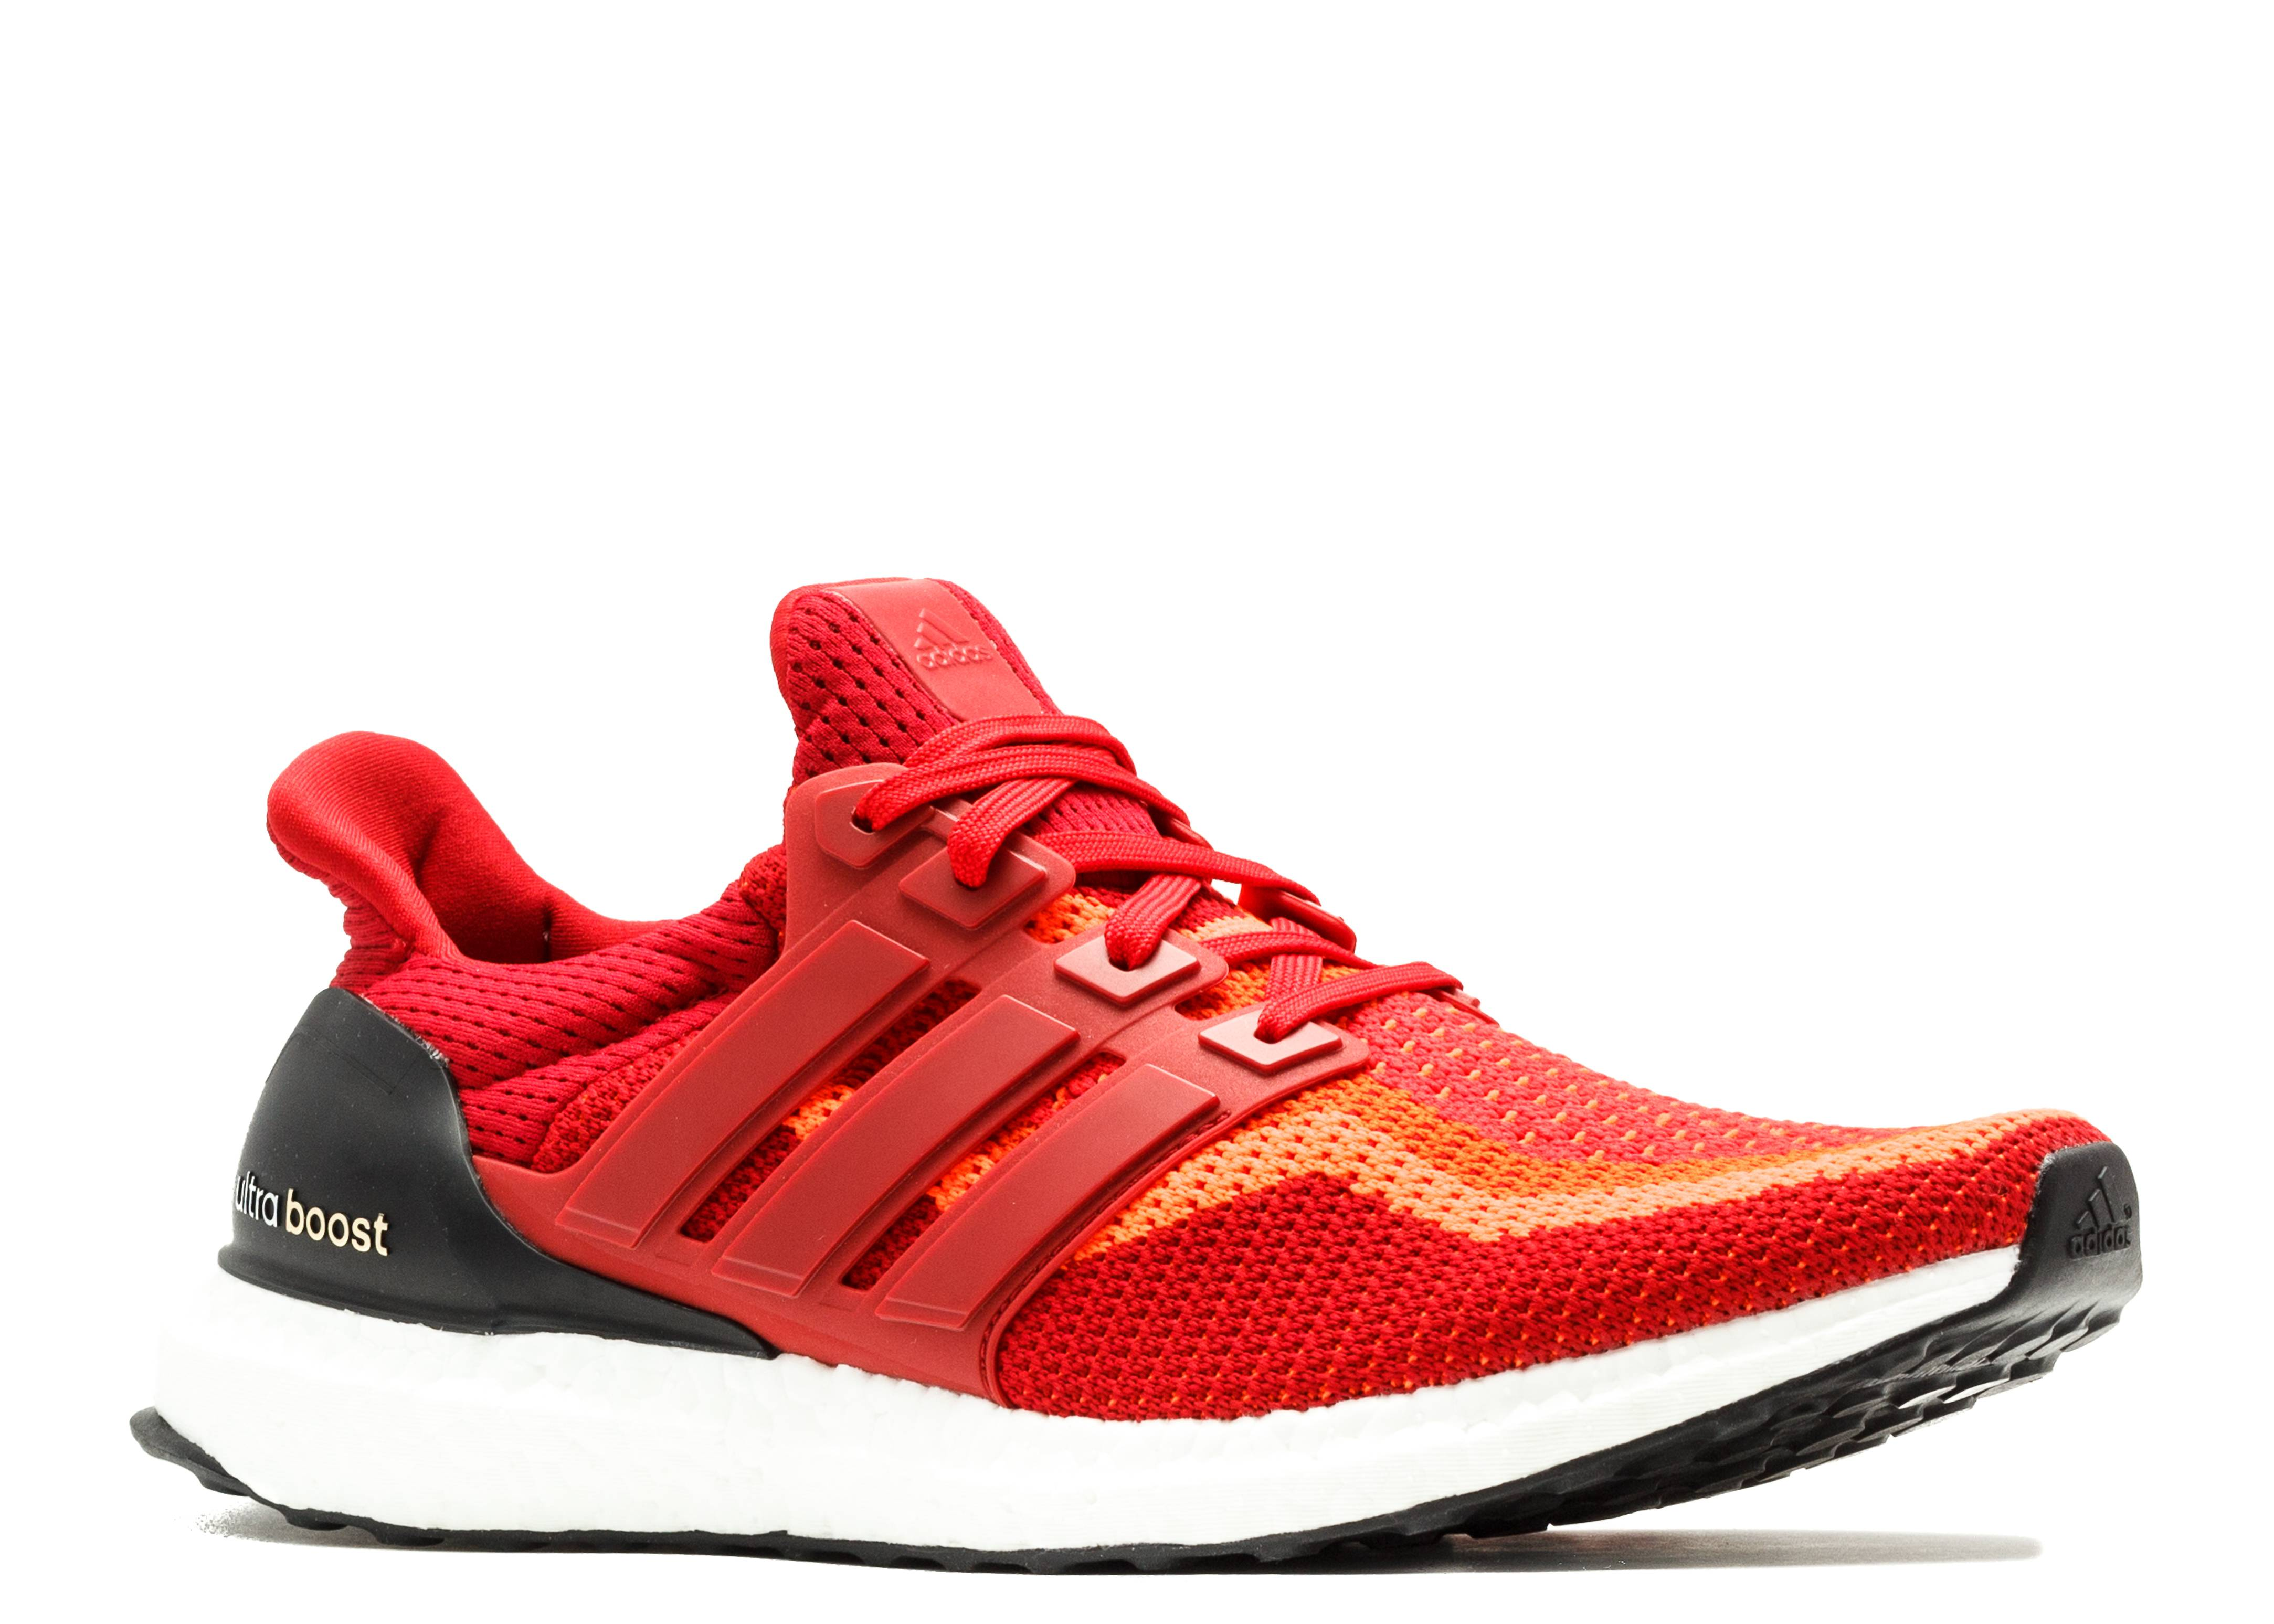 3a994ad2395 UltraBoost - Adidas - aq4006 - solar red power red white